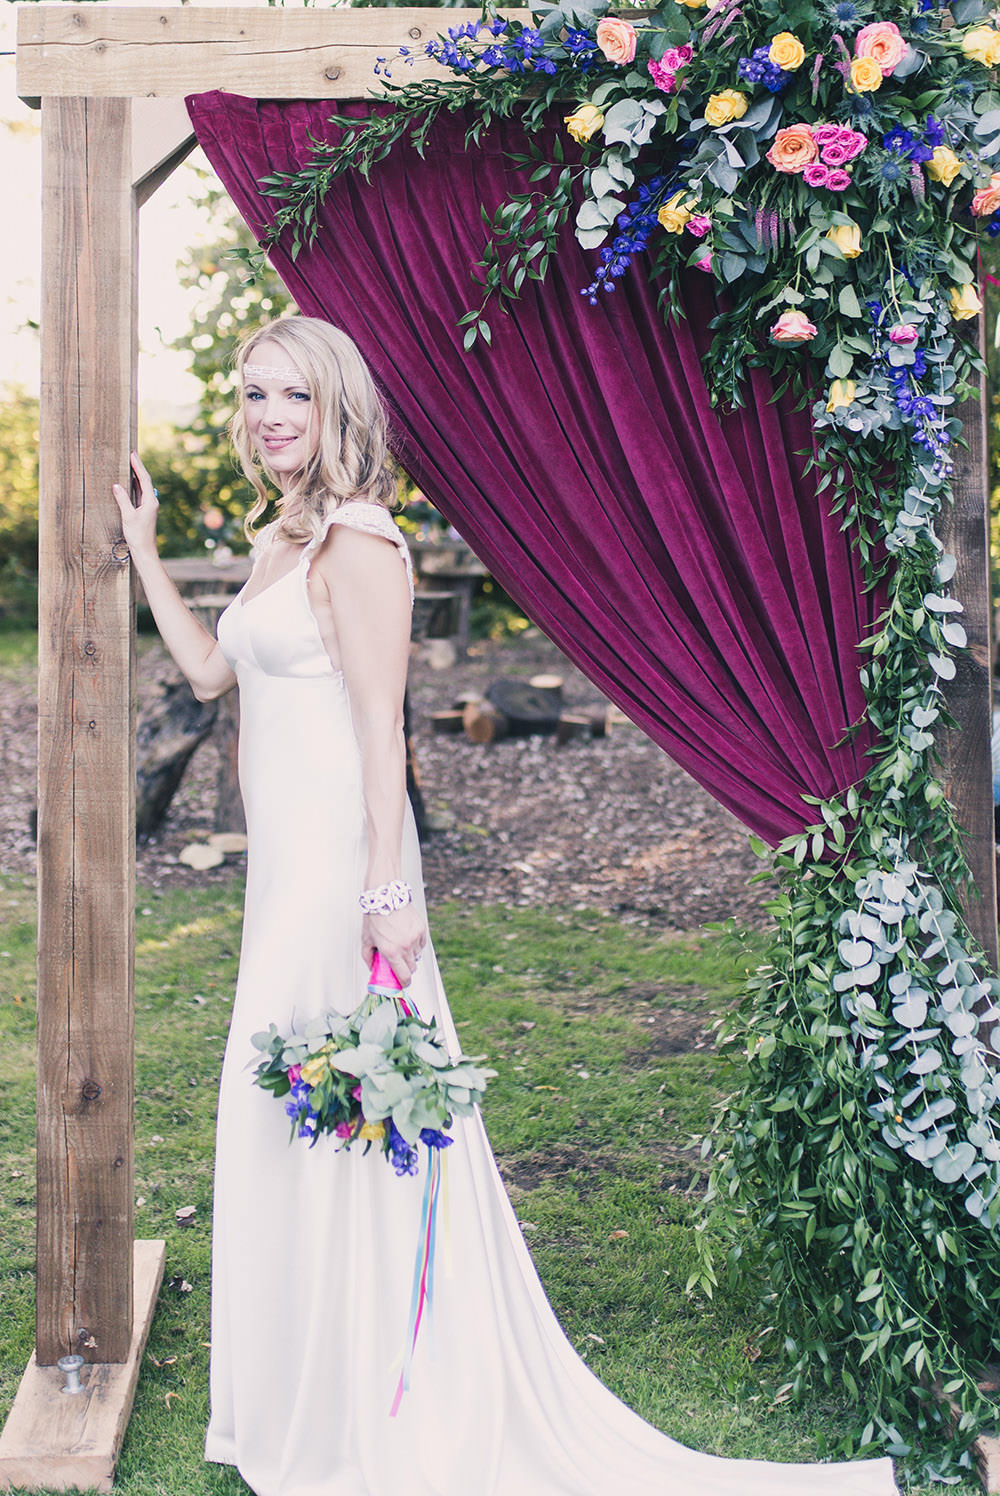 Flower Arch Florals Wooden Frame Multi Colour Colourful Backdrop Hothorpe Hall Woodlands Wedding Lucy Long Photography